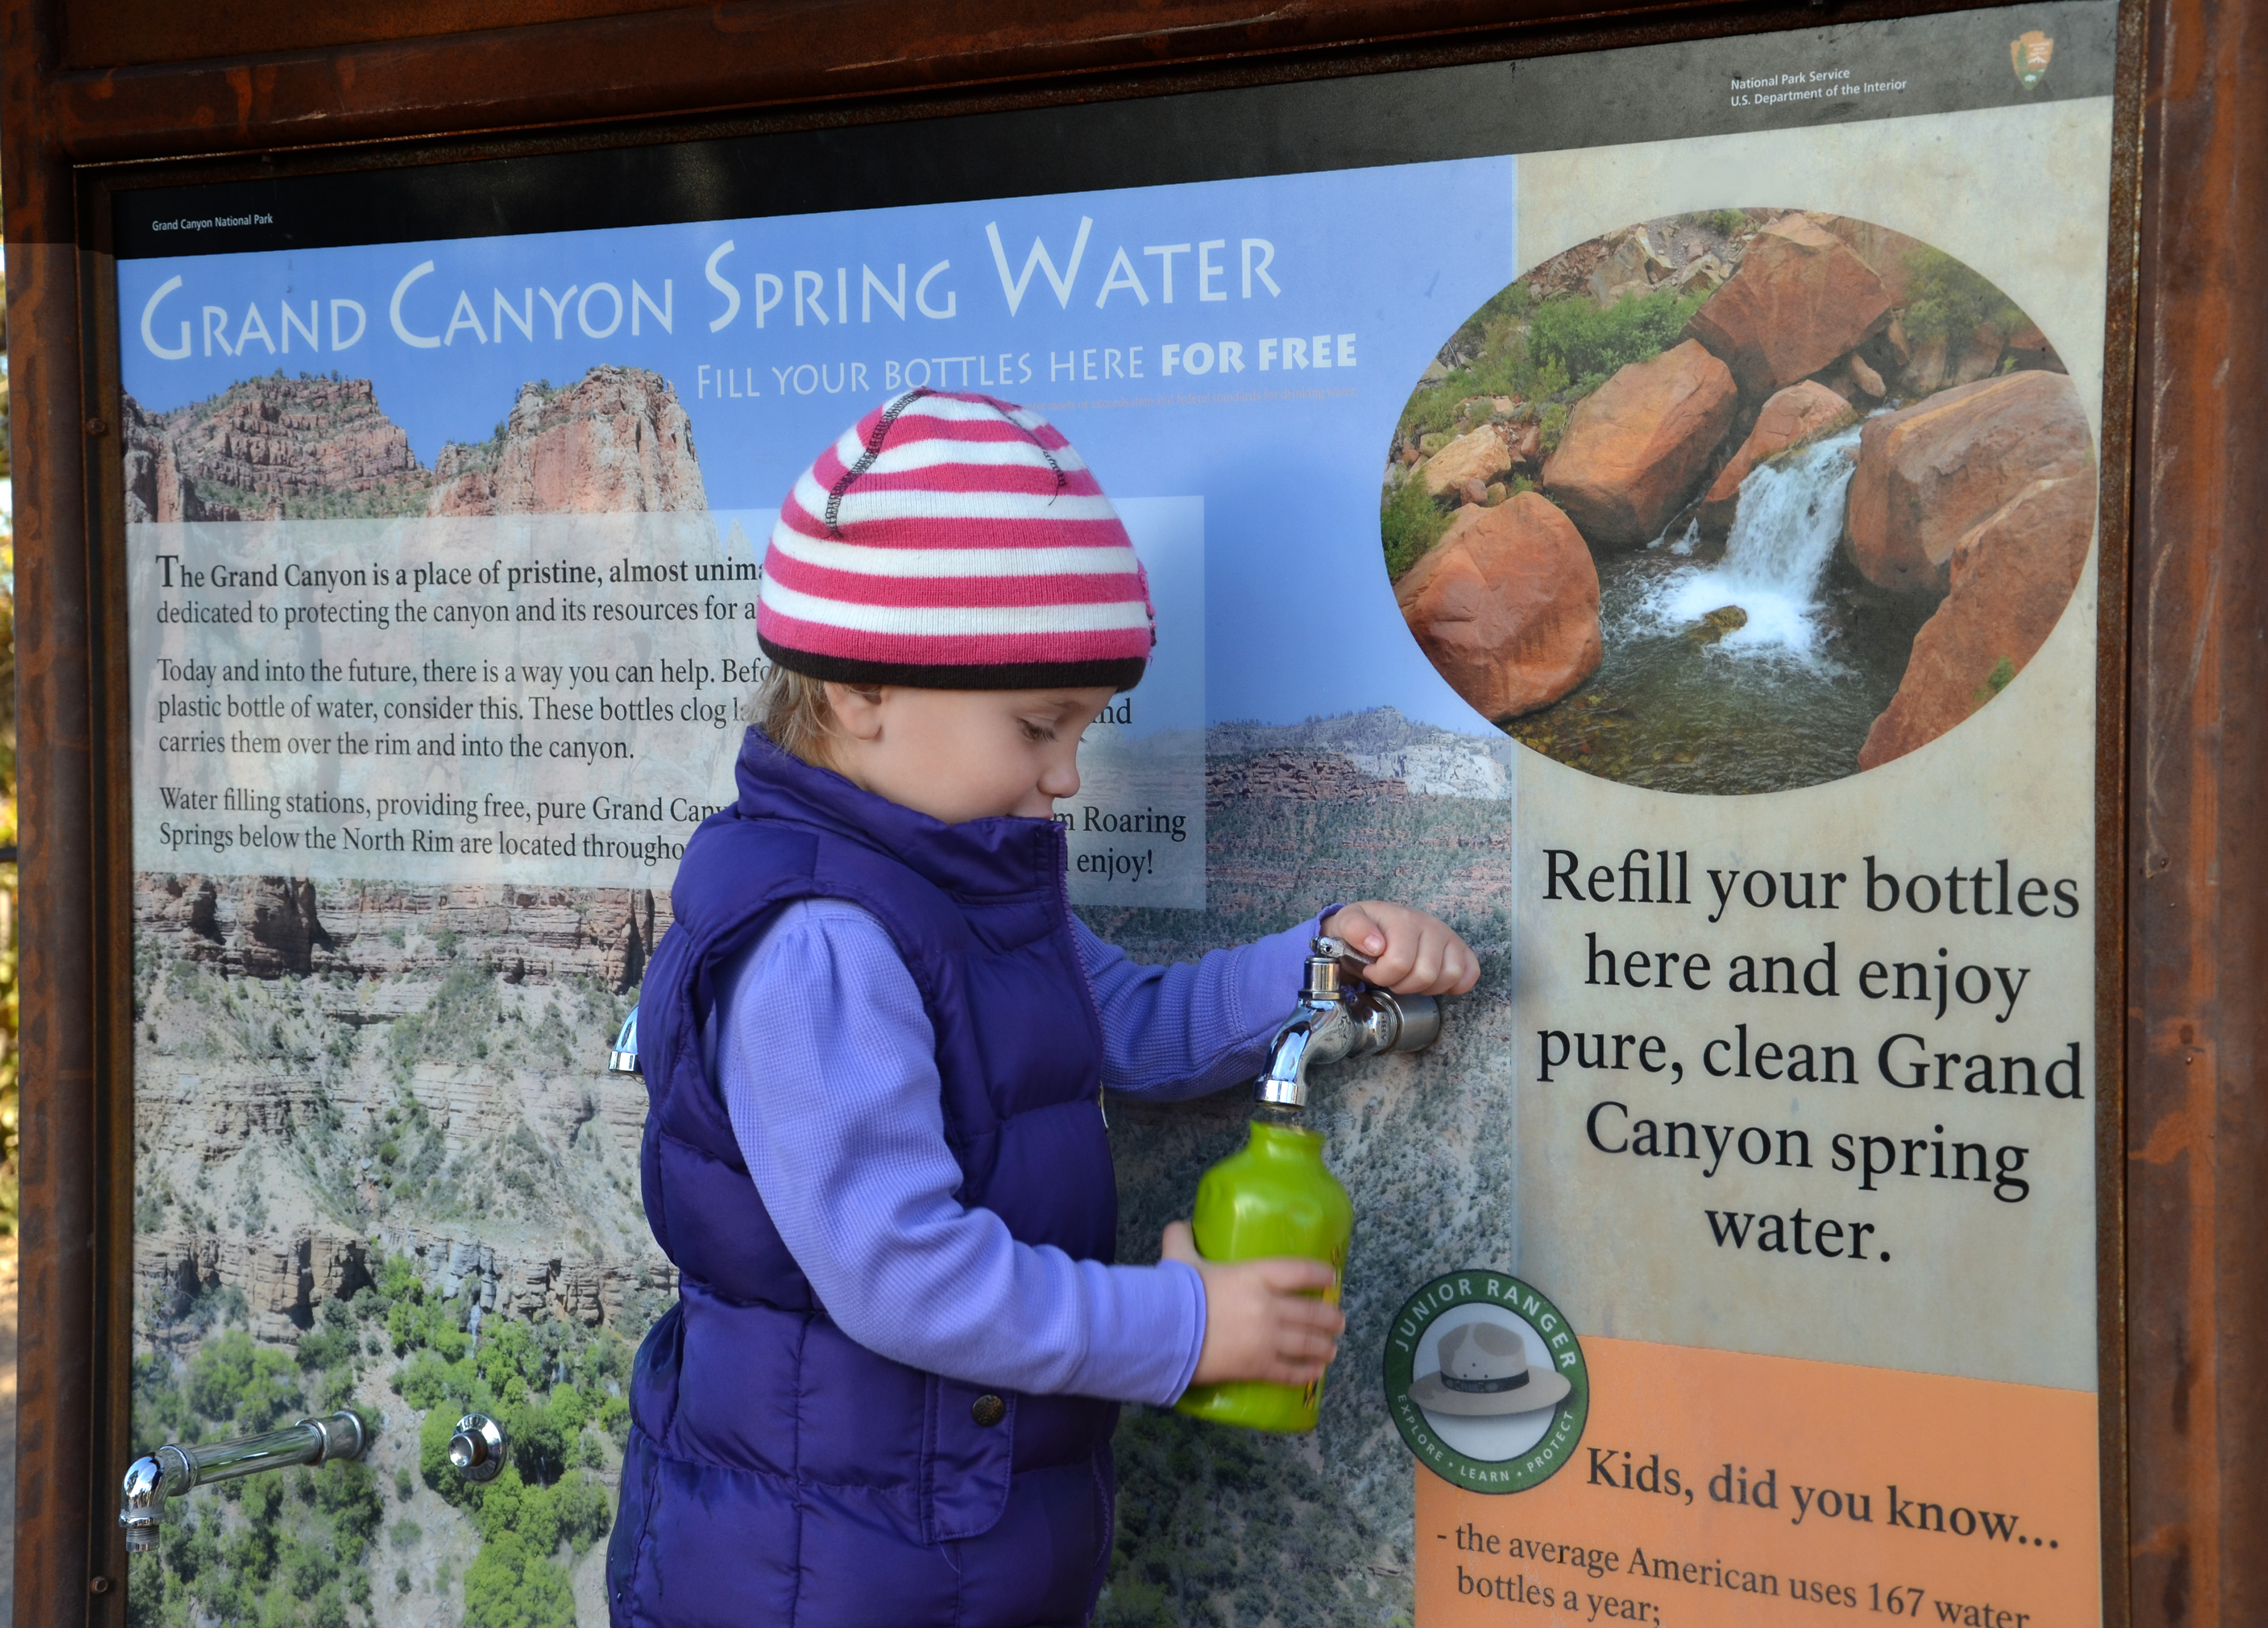 Water bottle filling stations are part of the campaign to go plastic-bottle-free in National Parks. Photo: GrindTV